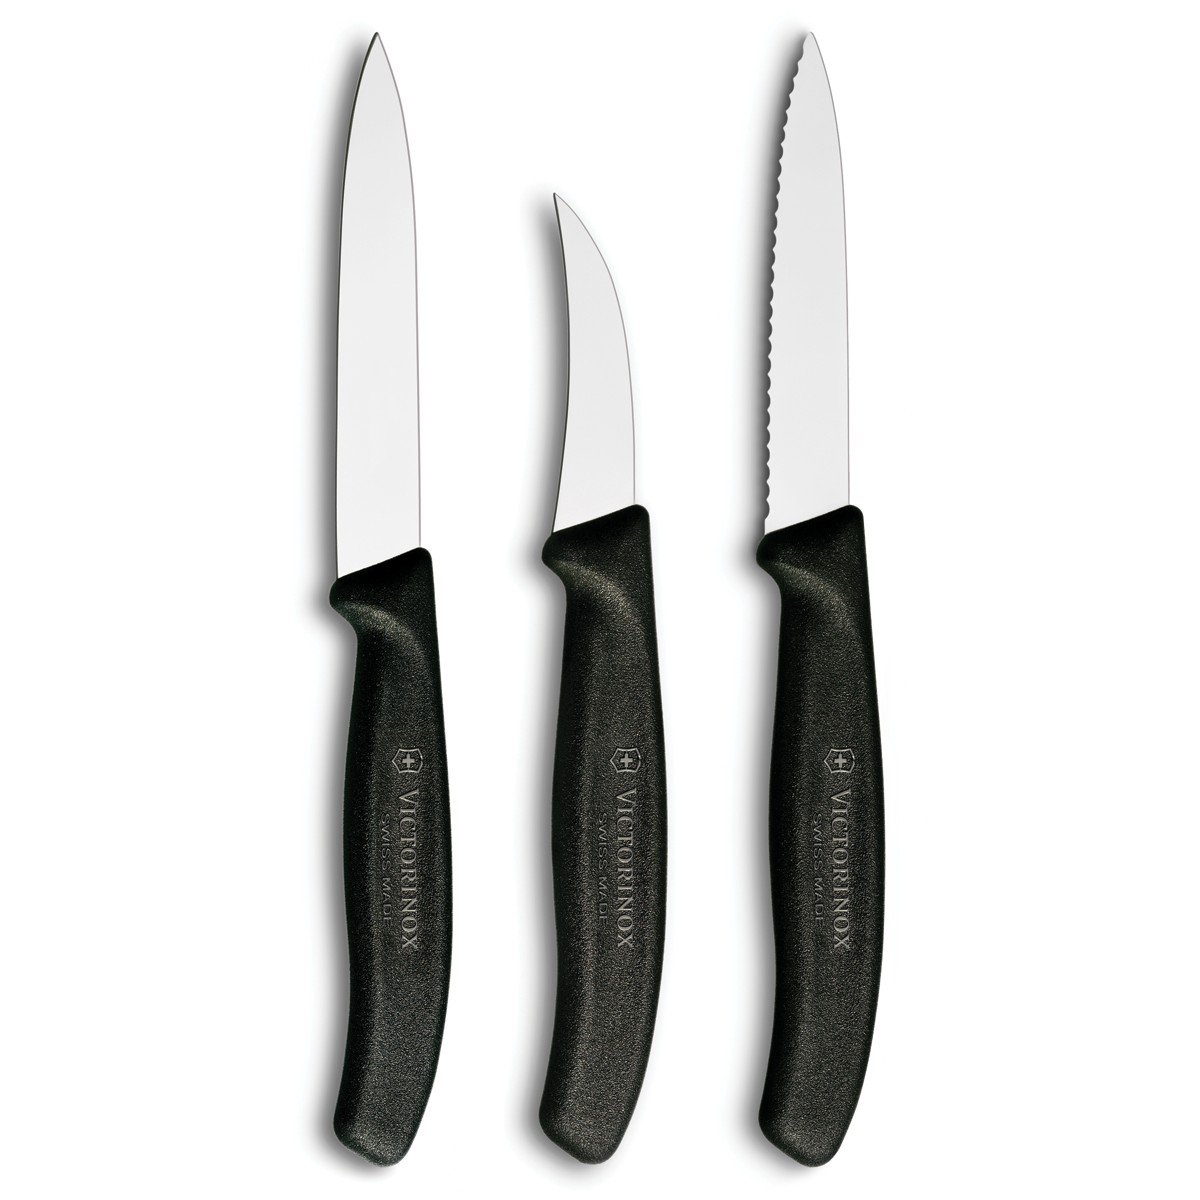 Victorinox Swiss Classic 3-Piece Paring Set - 6.7600.3US1 by Victorinox